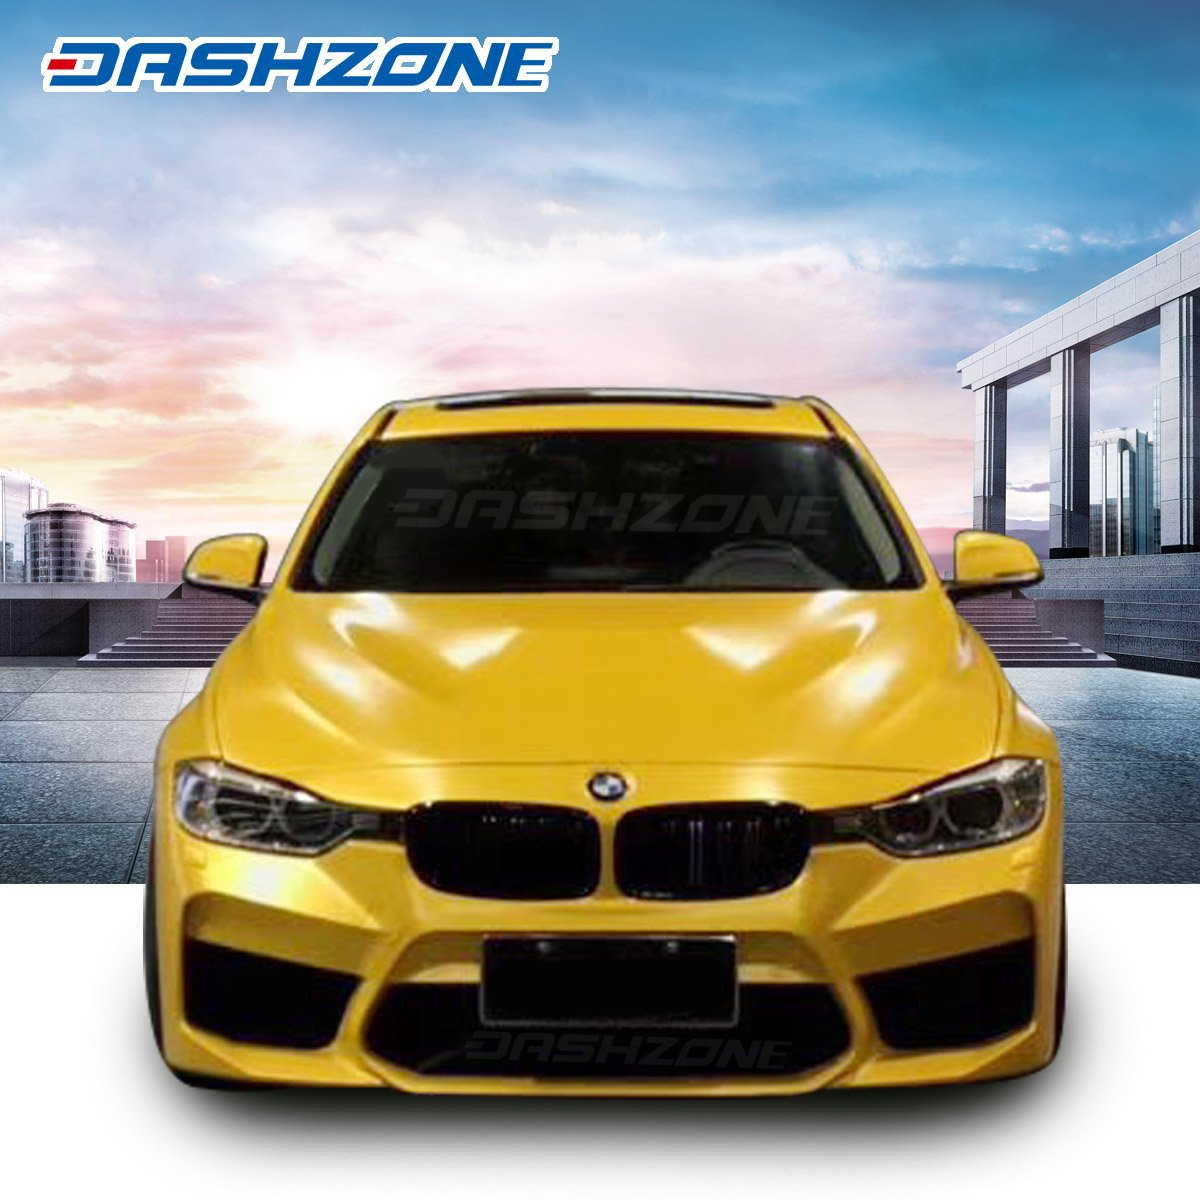 Details About Gmr Front Bumper Body Kits Lip Spoiler Fit 2012 2018 Bmw F30 F31 3 Series 4d